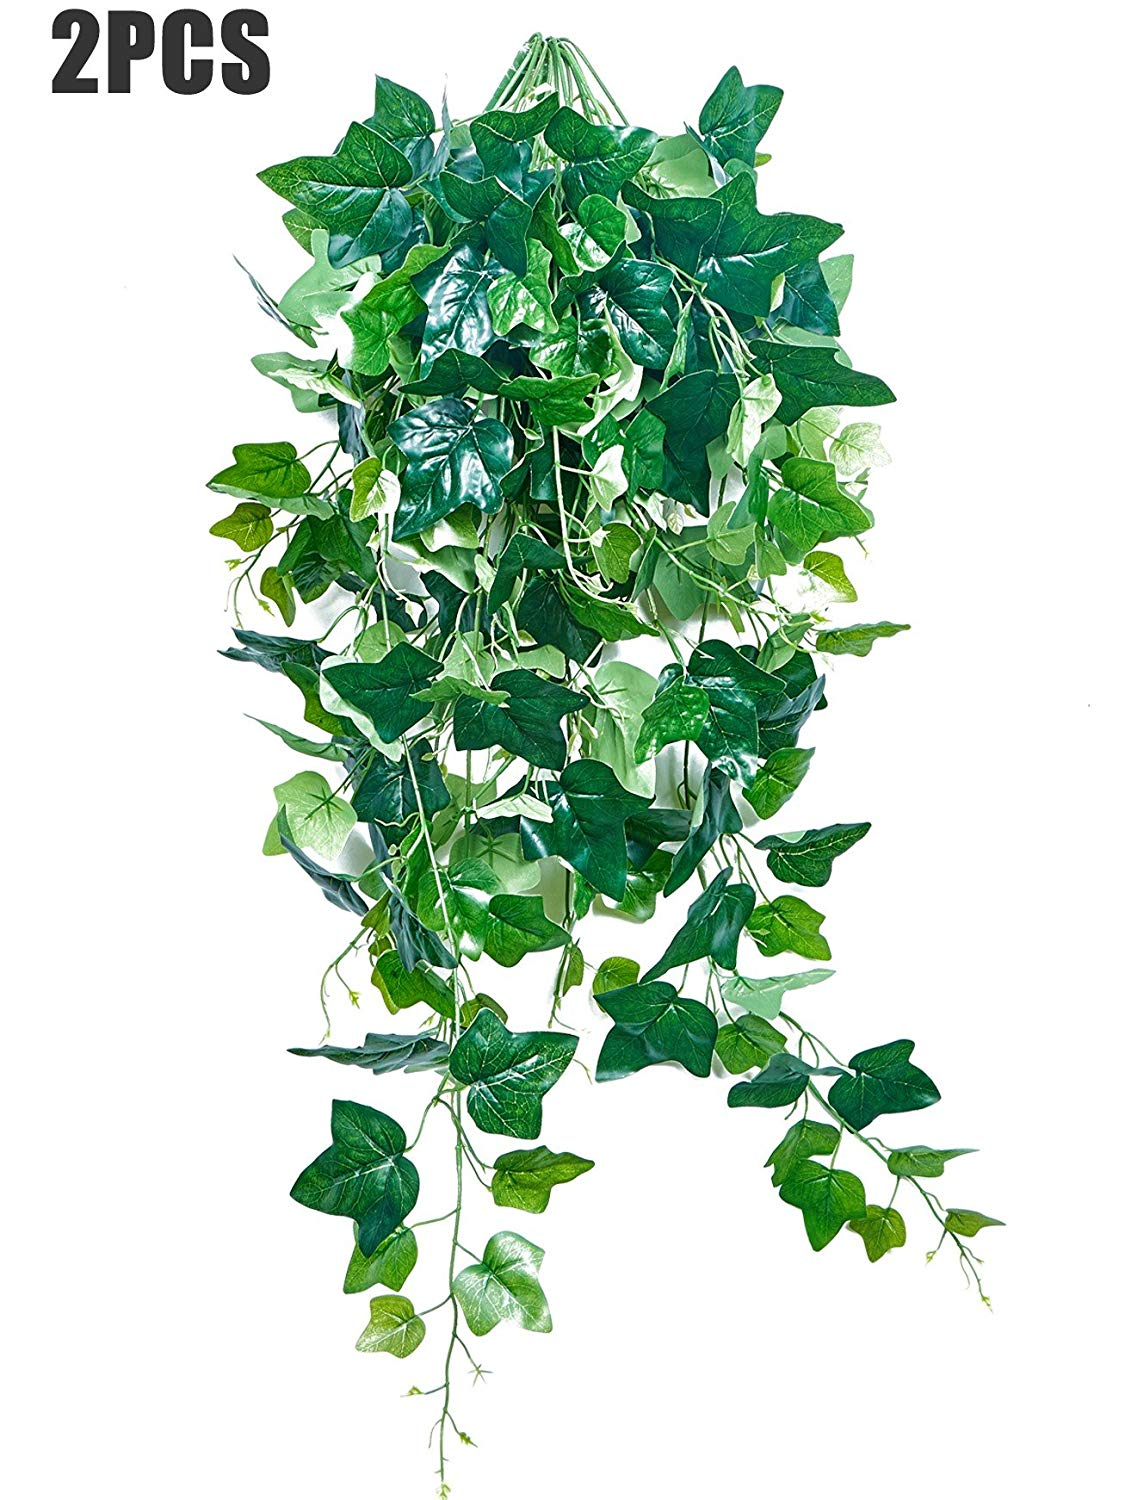 2pcs 41.7inch Artificial Ivy Hanging Plastic Greenery Fake Vine Plants Faux Green Leaves Home Wall Decor Indoor Outdside Hanging Basket